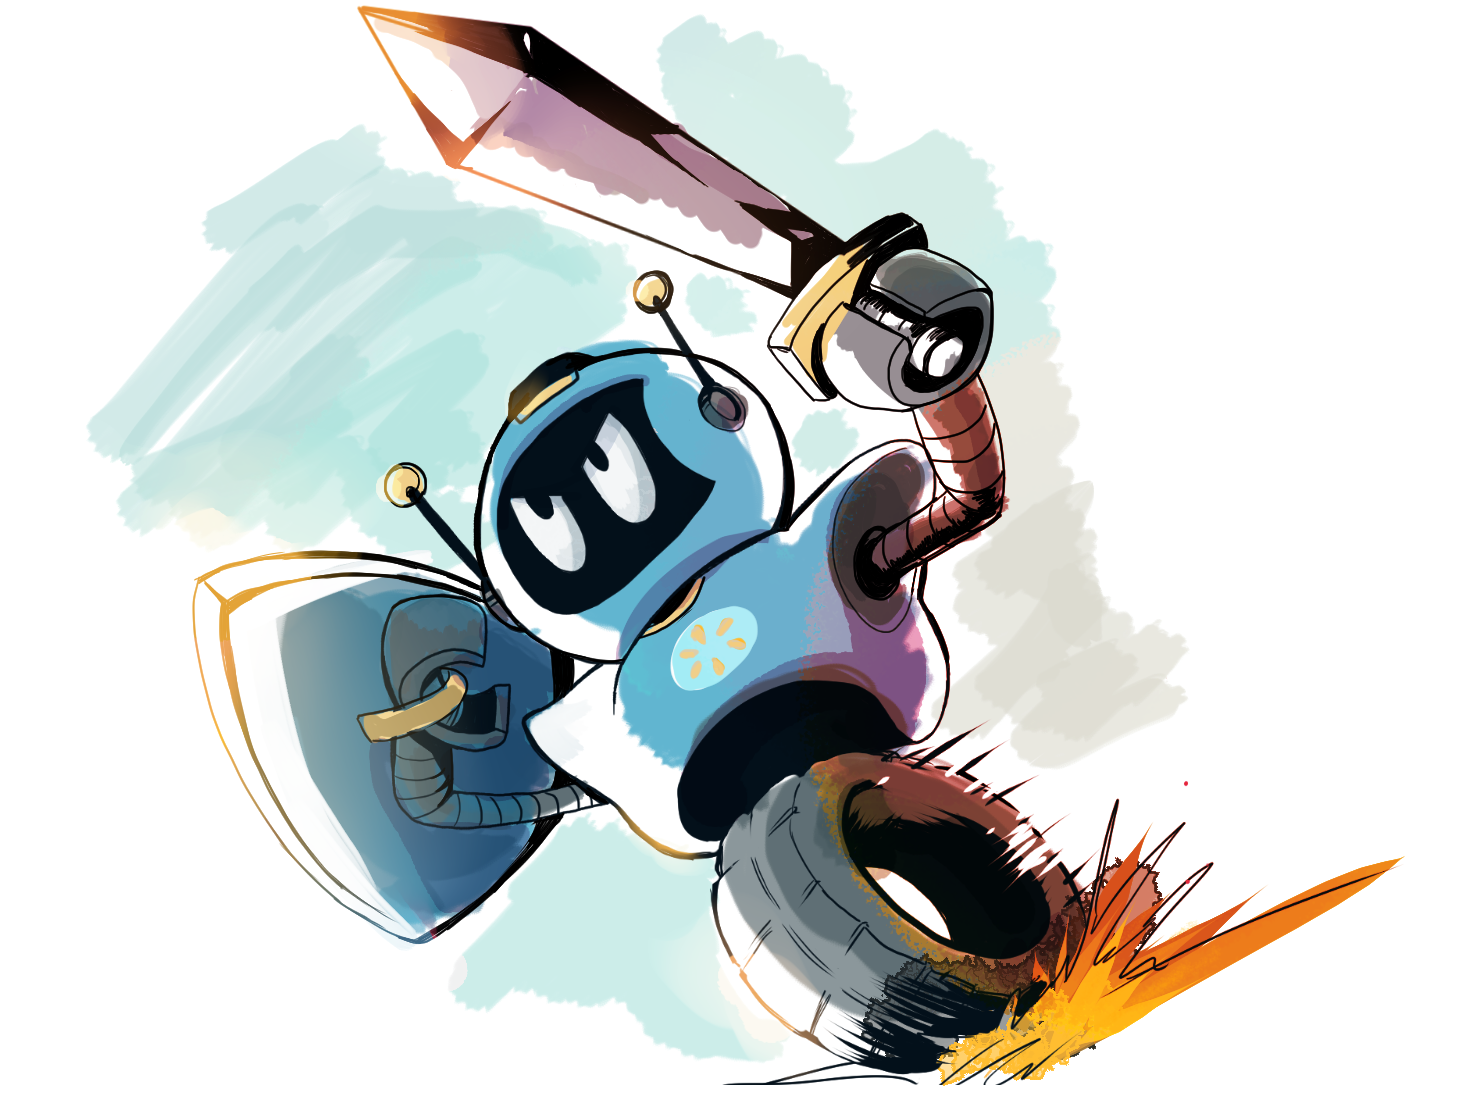 A robot with a sword